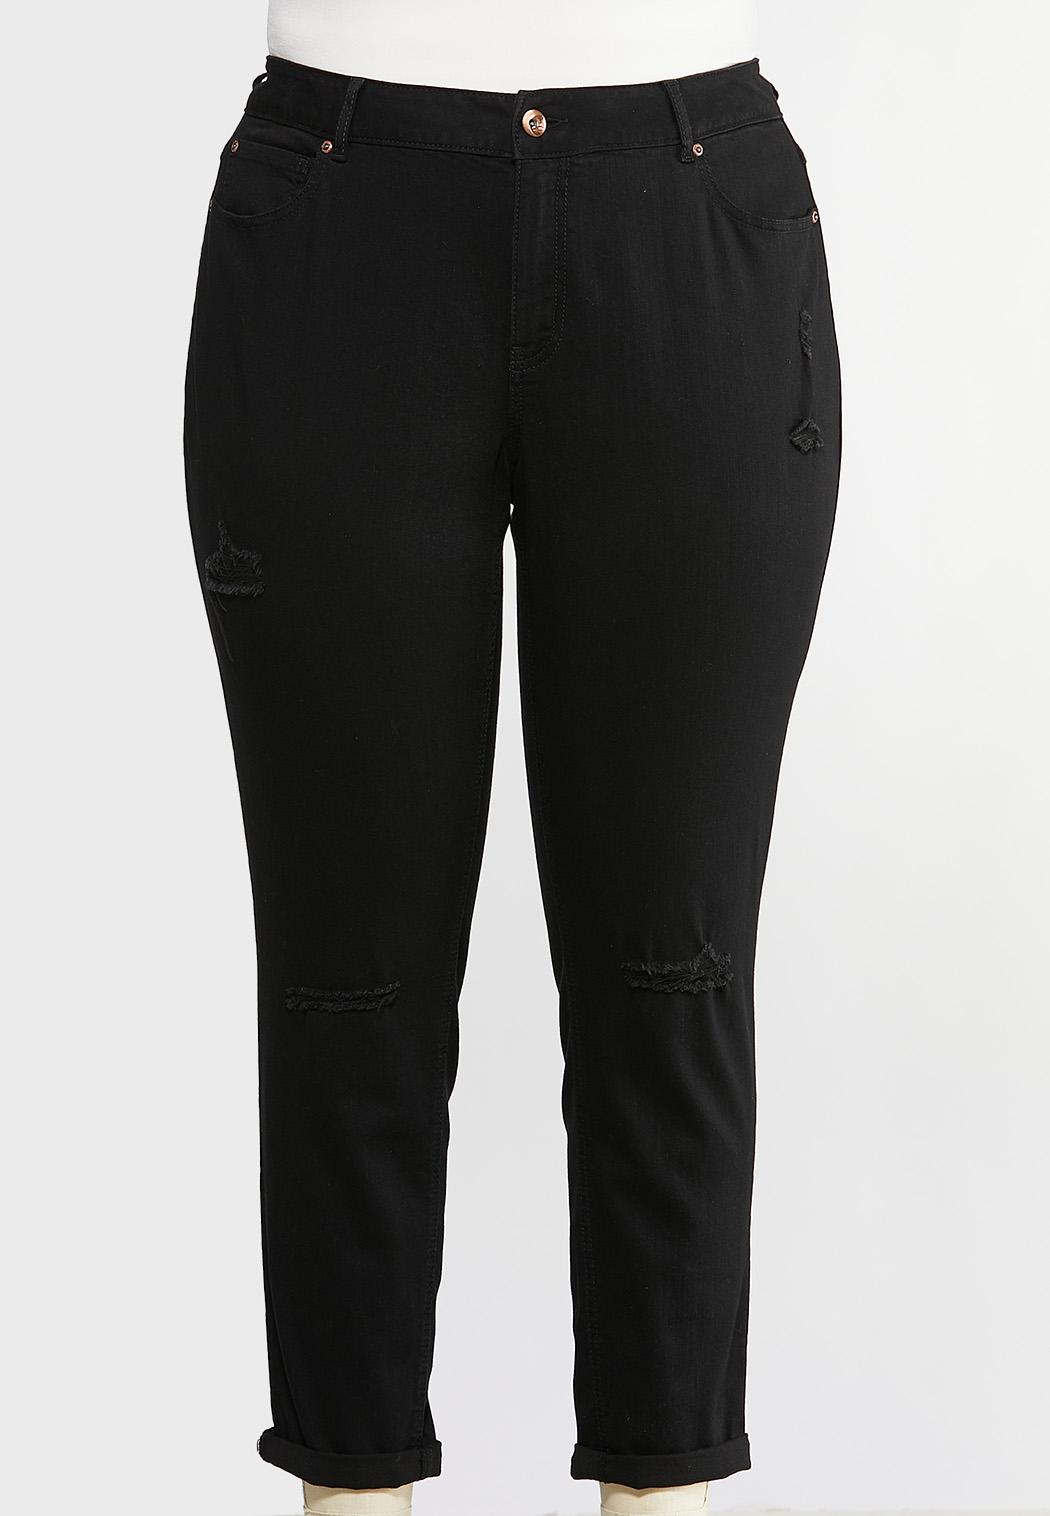 Plus Size Black Skinny Ankle Jeans